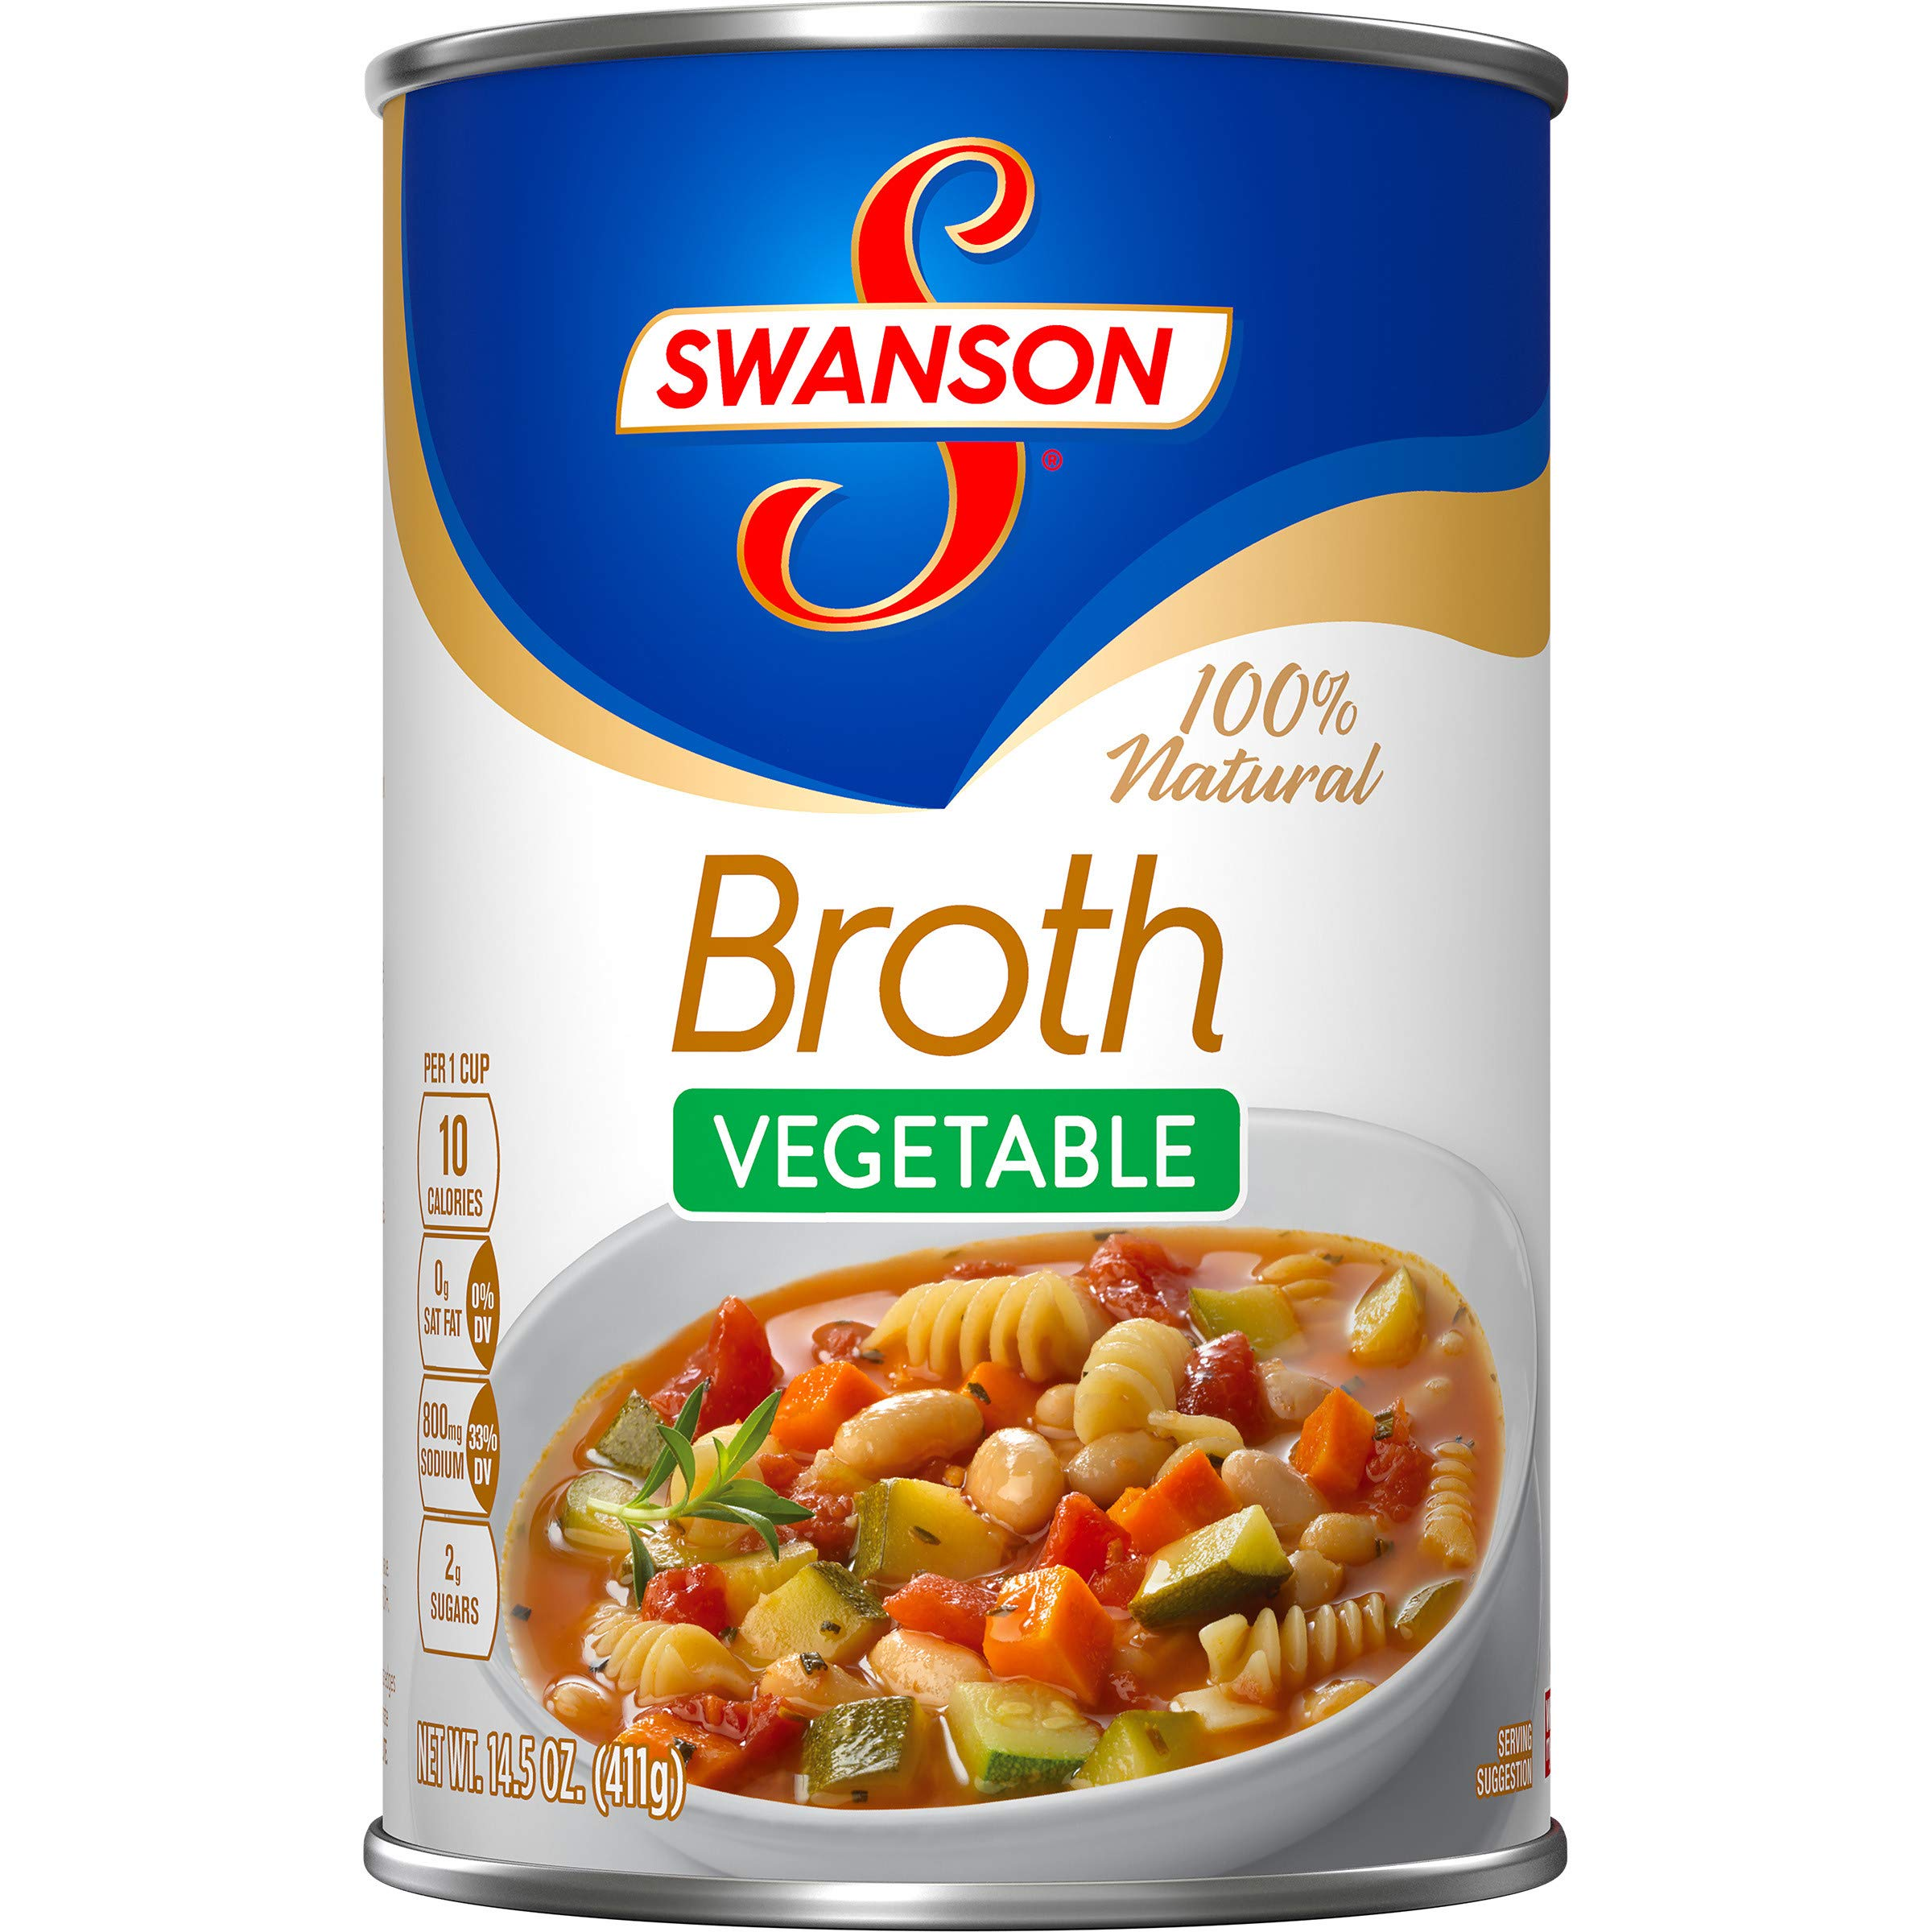 Swanson Vegetable Broth, 14.5 oz. Can